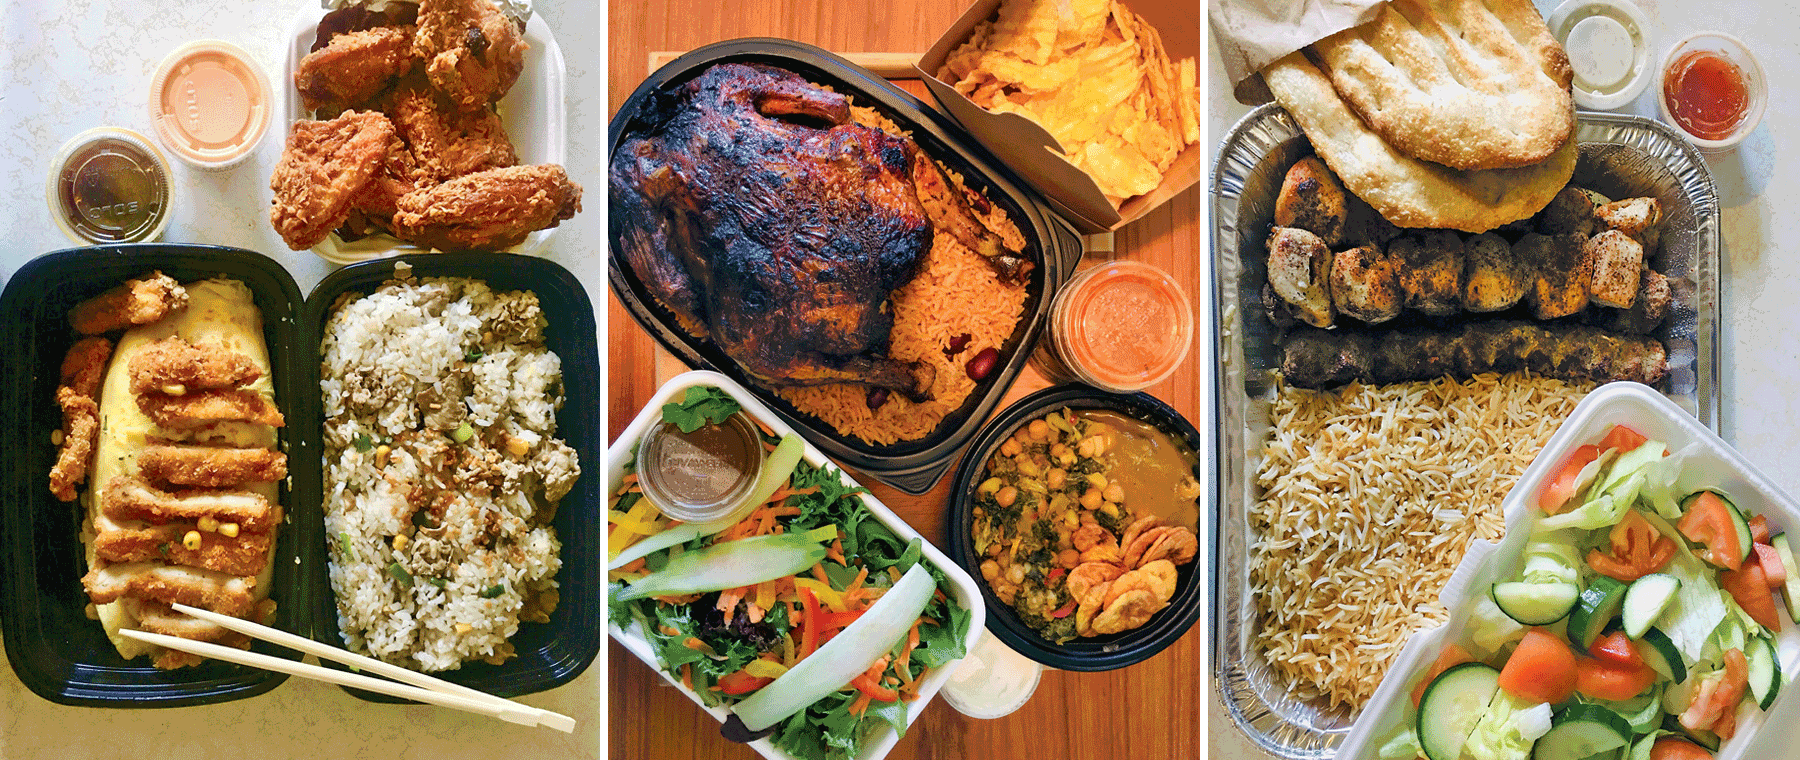 Best New Takeout of 2020: Mezbaan, Bacanalle, Hey Kitchen, Mojo's Chinese